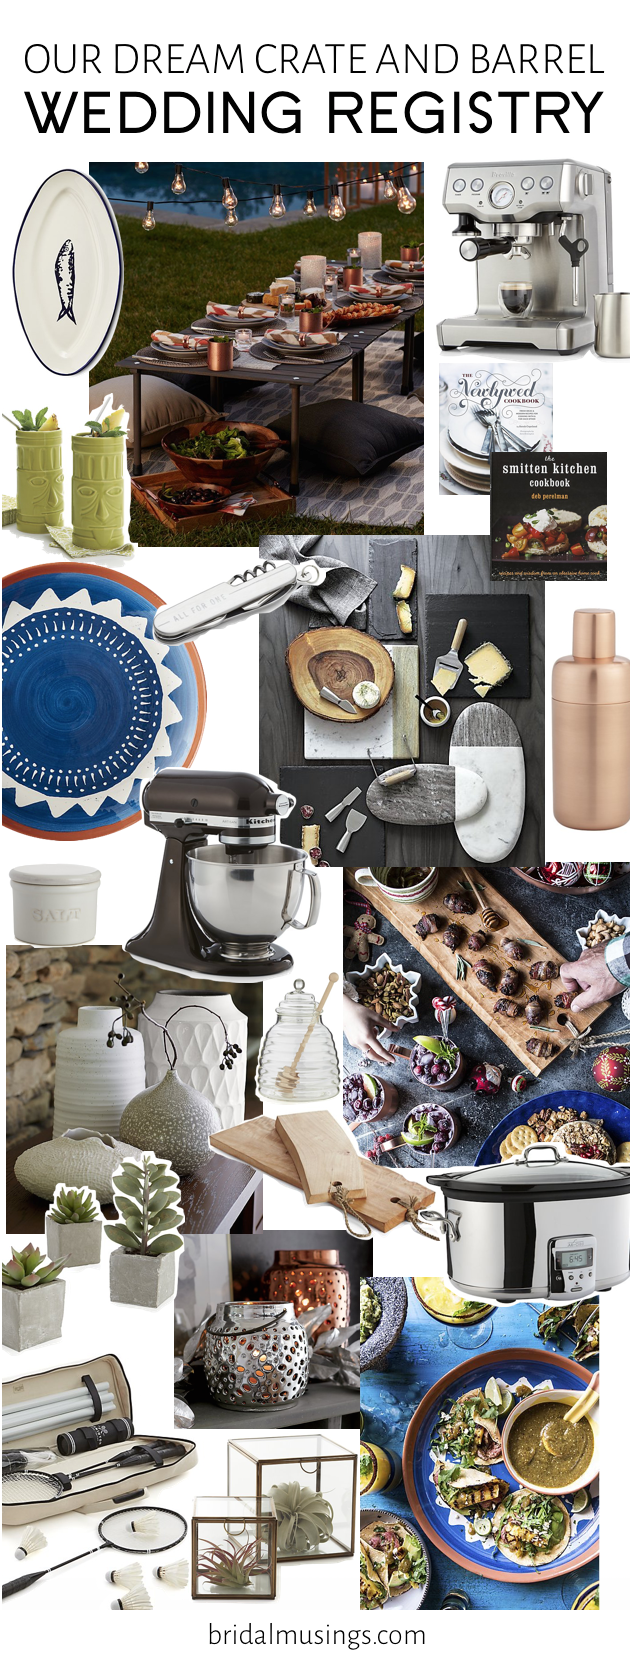 Our Dream Wedding Registry With Crate And Barrel Bridal Musings